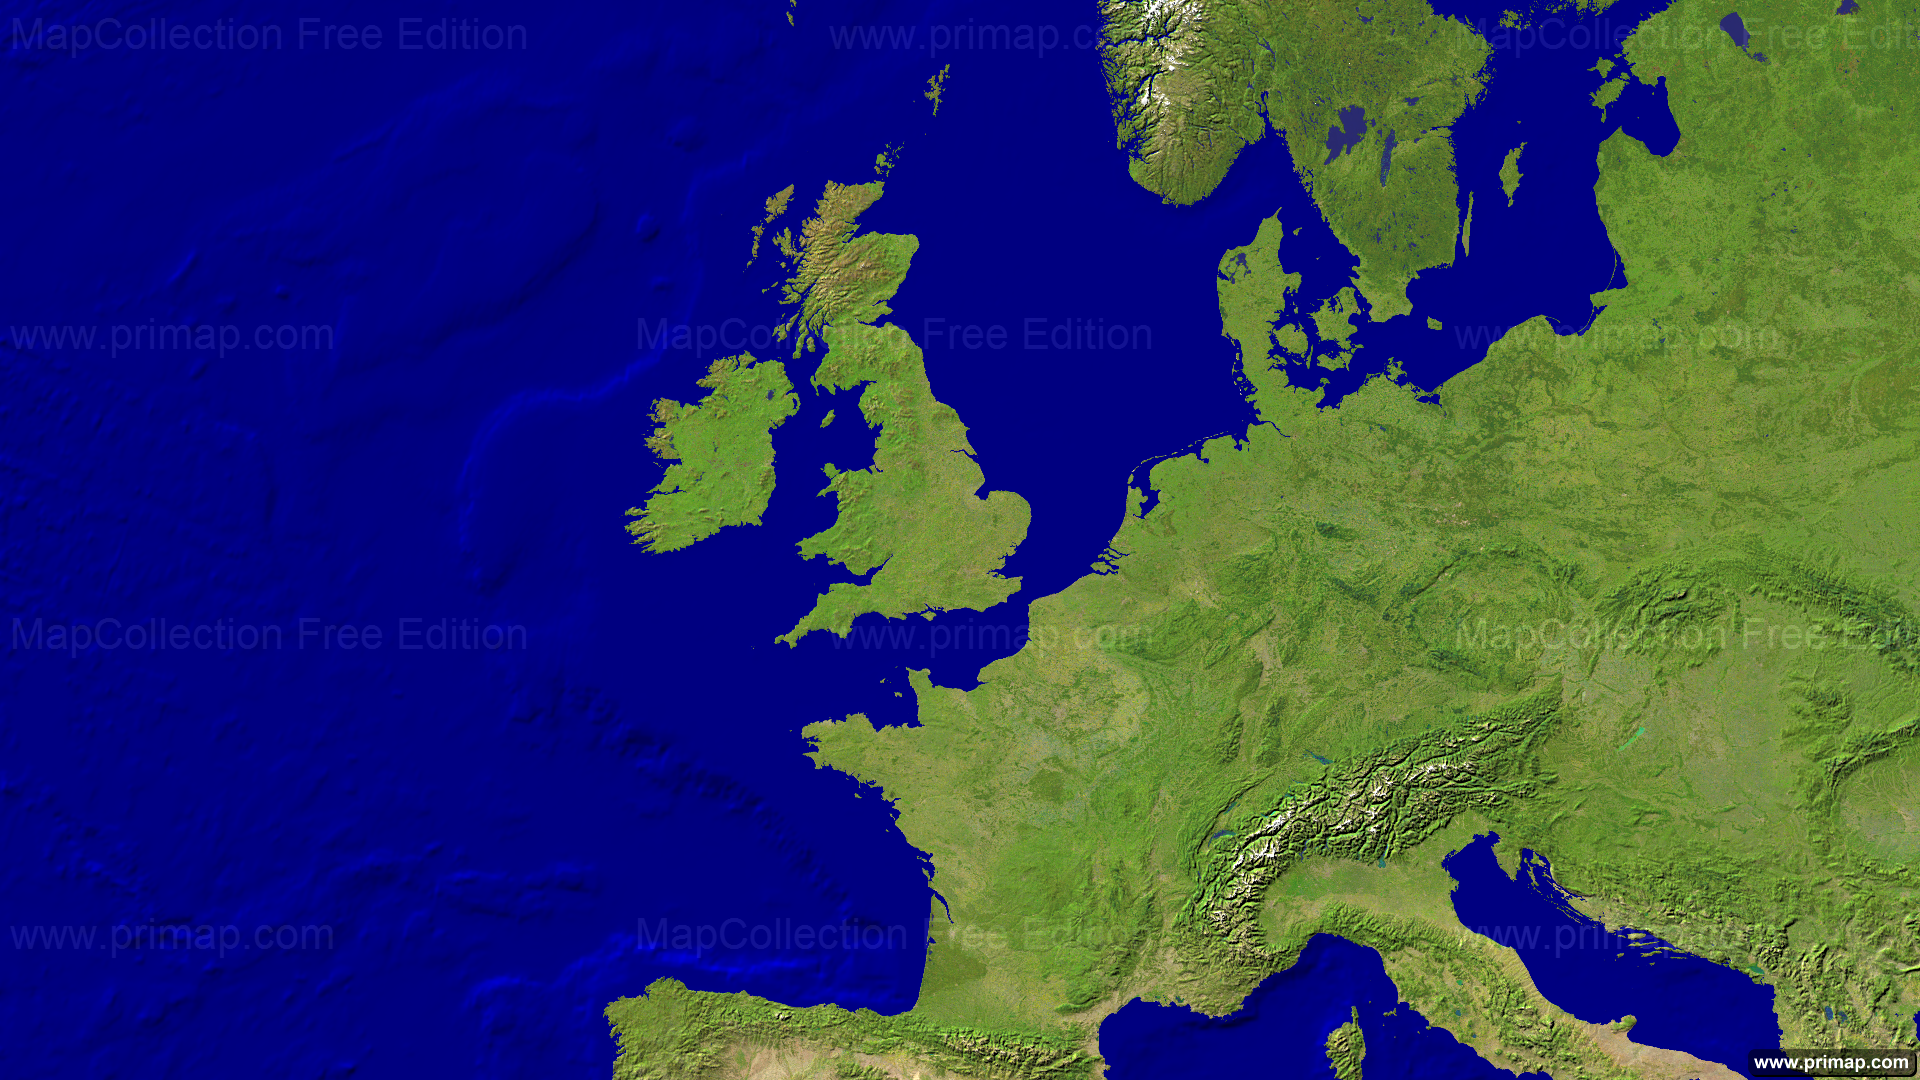 Map Of Europe West.Primap Continental Maps